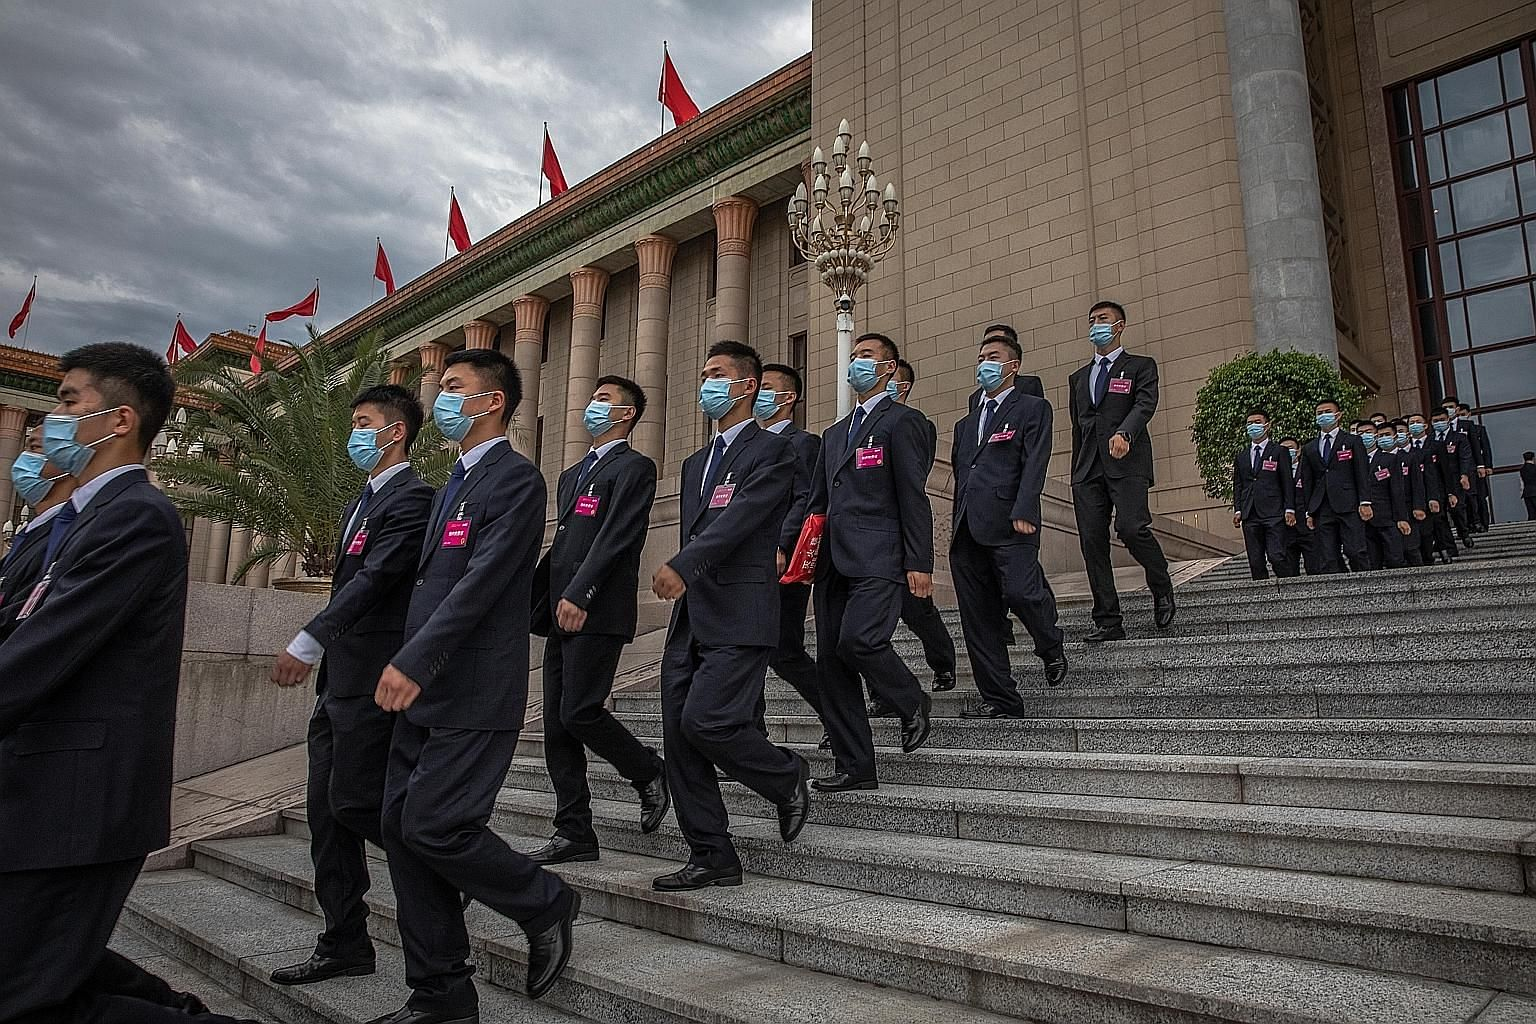 Security officials marching after the second plenary session of China's National People's Congress at the Great Hall of the People in Beijing, where the country's top prosecution body presented its annual report yesterday.